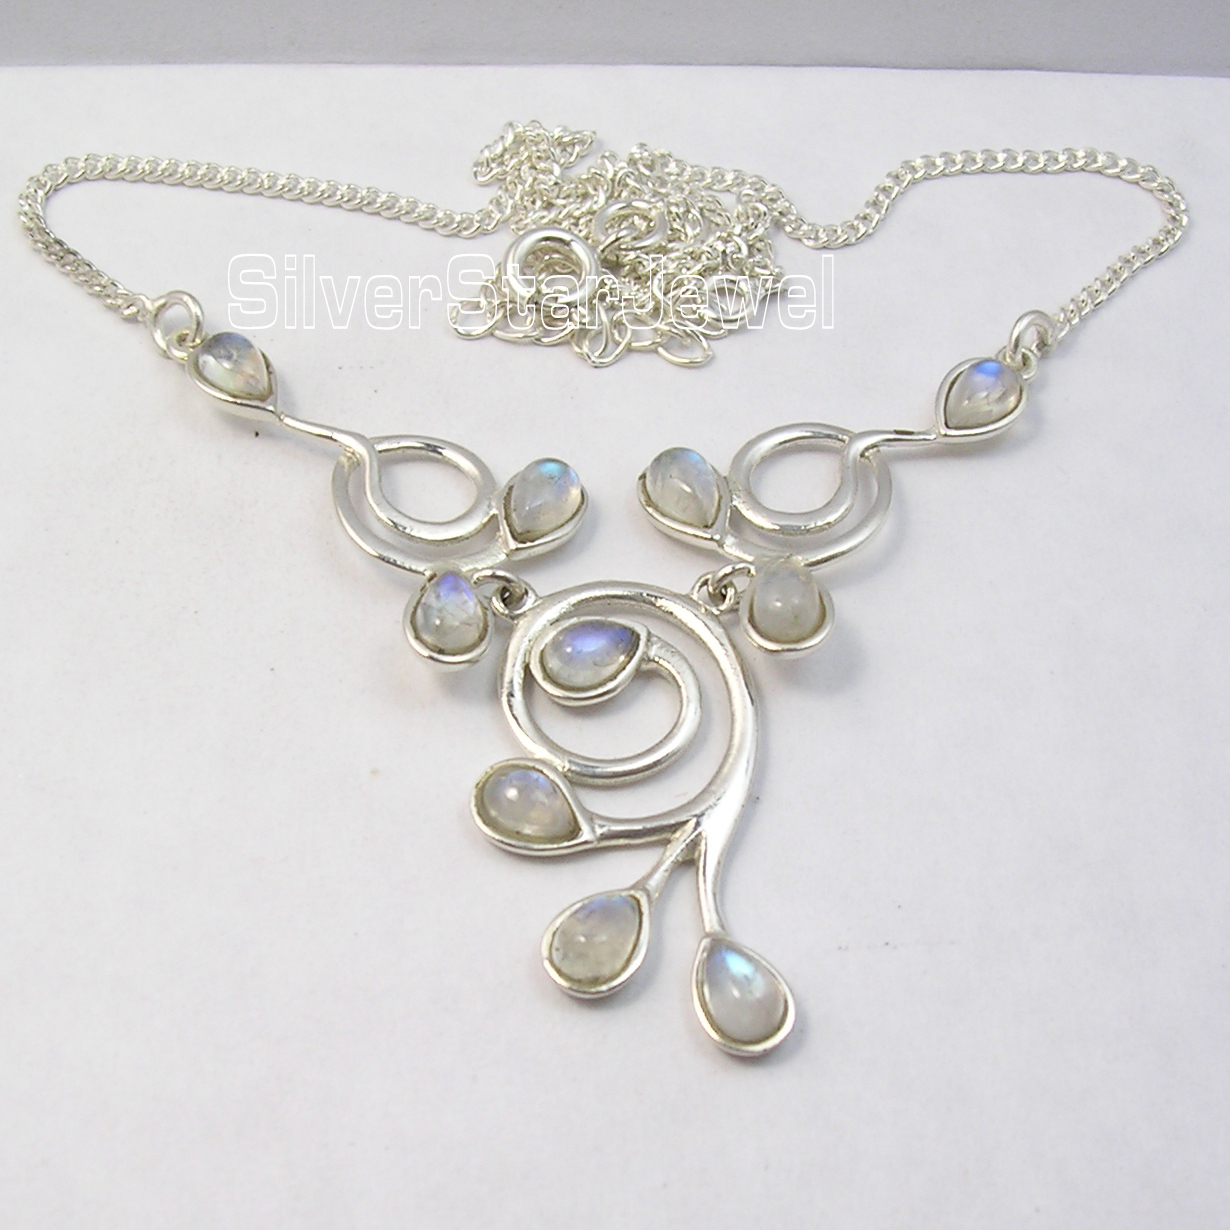 Buy gram necklace and get free shipping on AliExpress.com